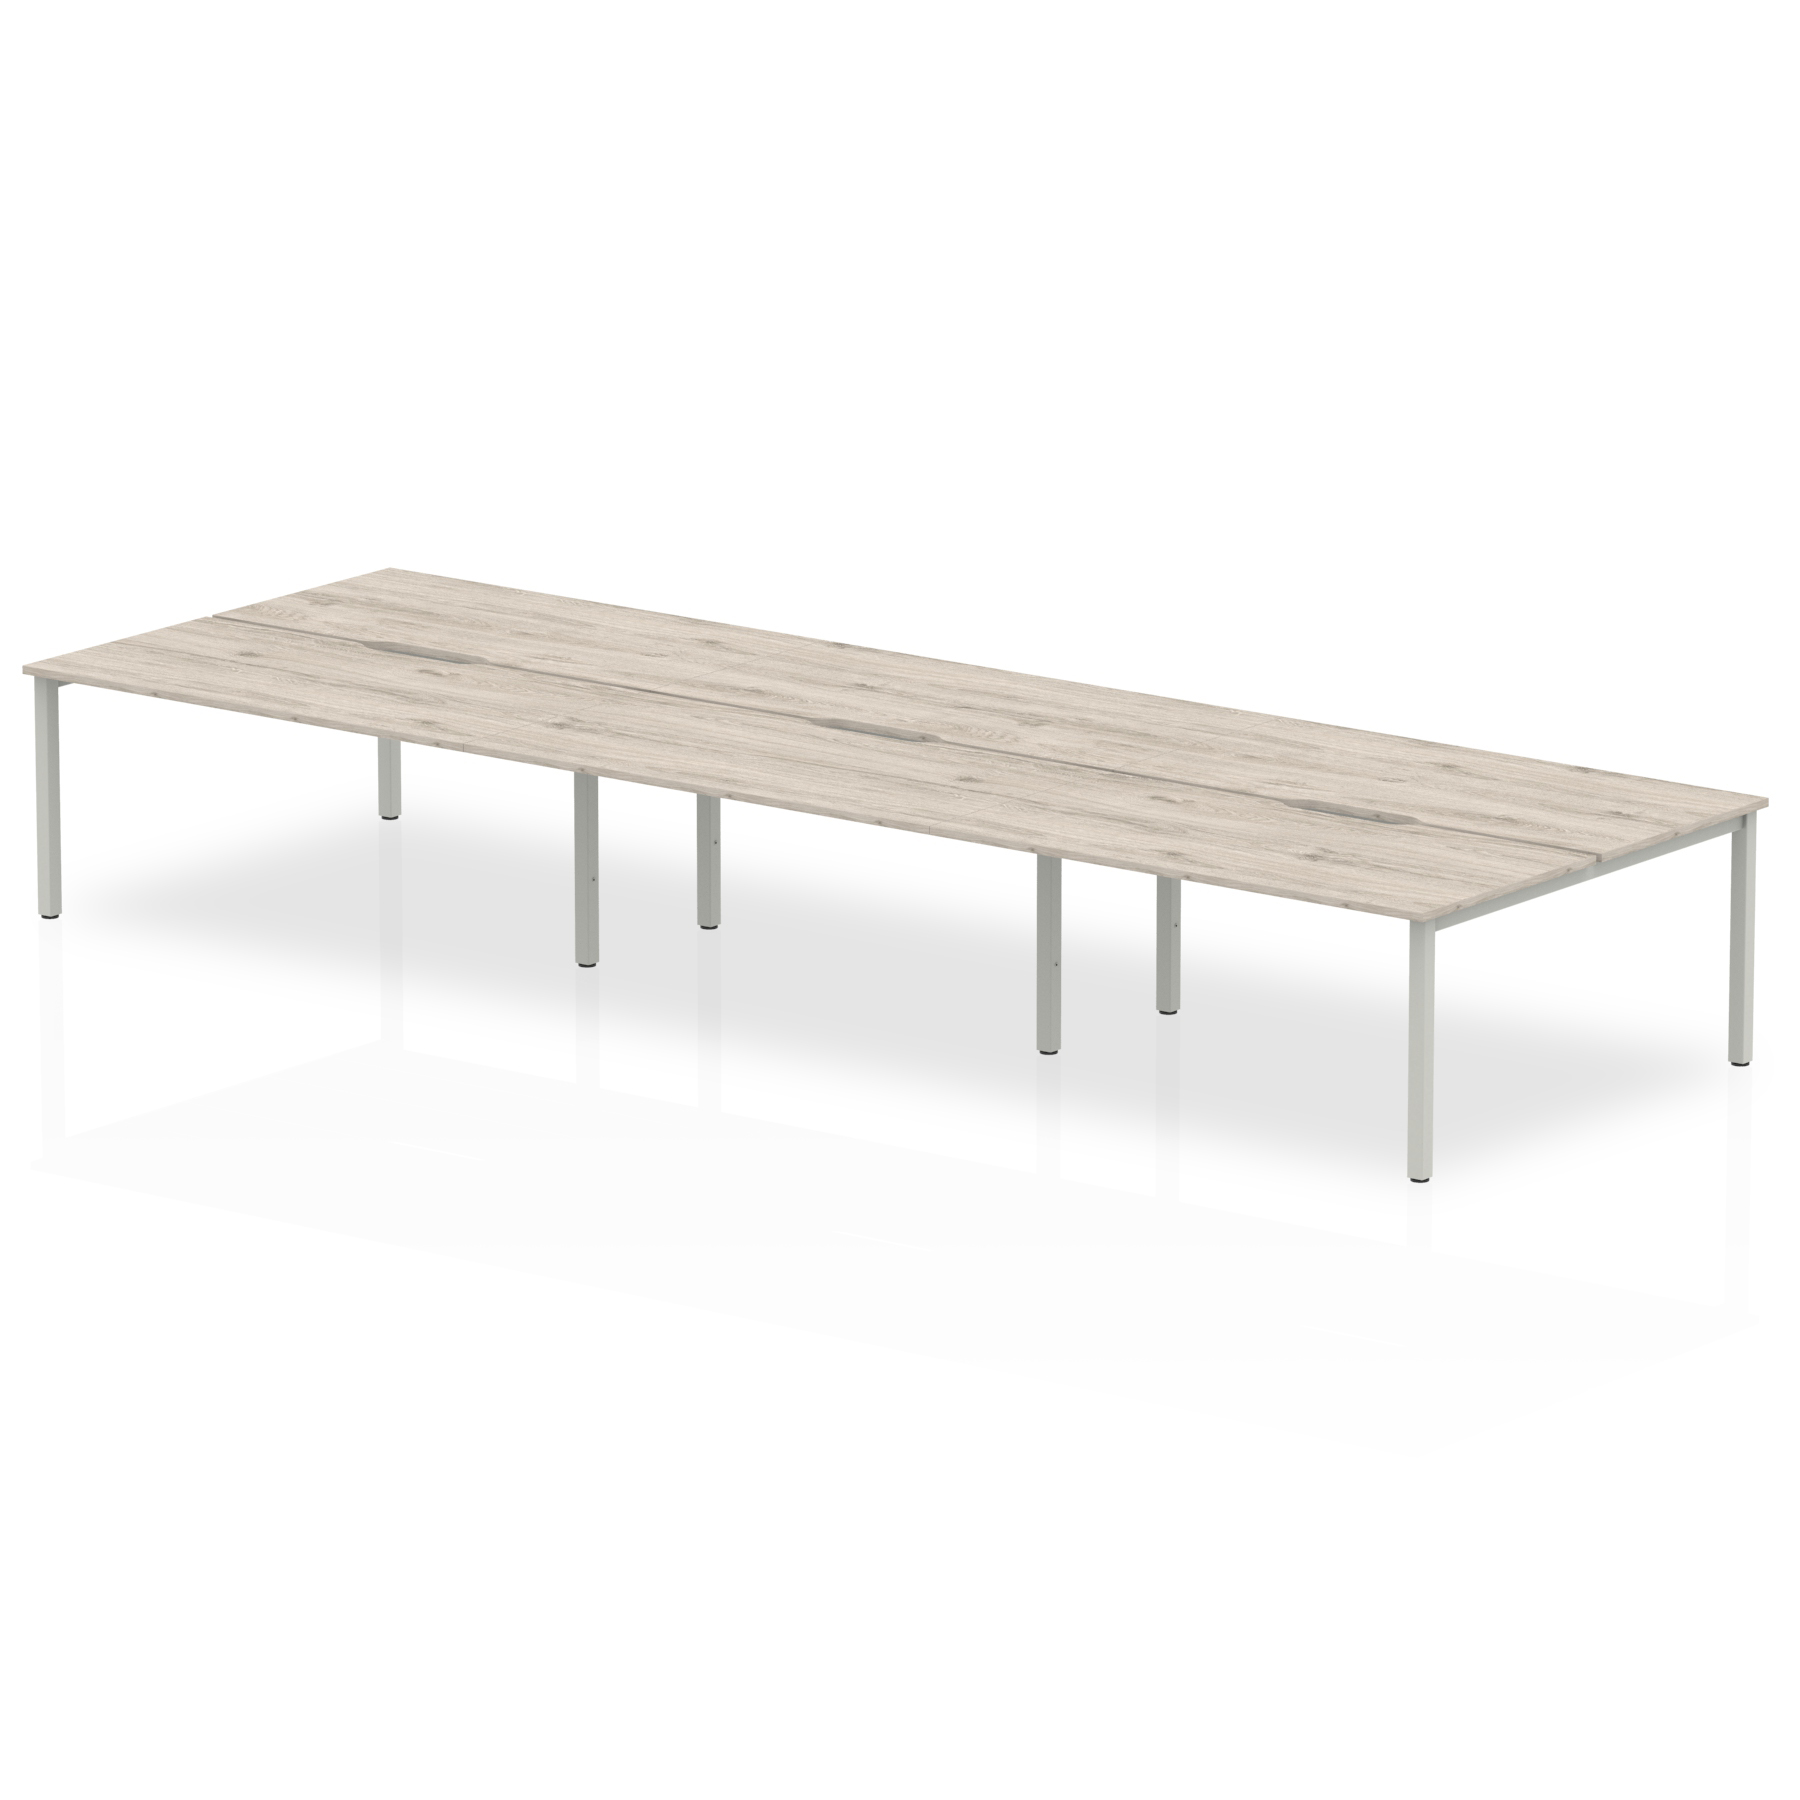 Desks Trexus Bench Desk 6 Person Back to Back Configuration Silver Leg 4200x1600mm Grey Oak Ref BE755